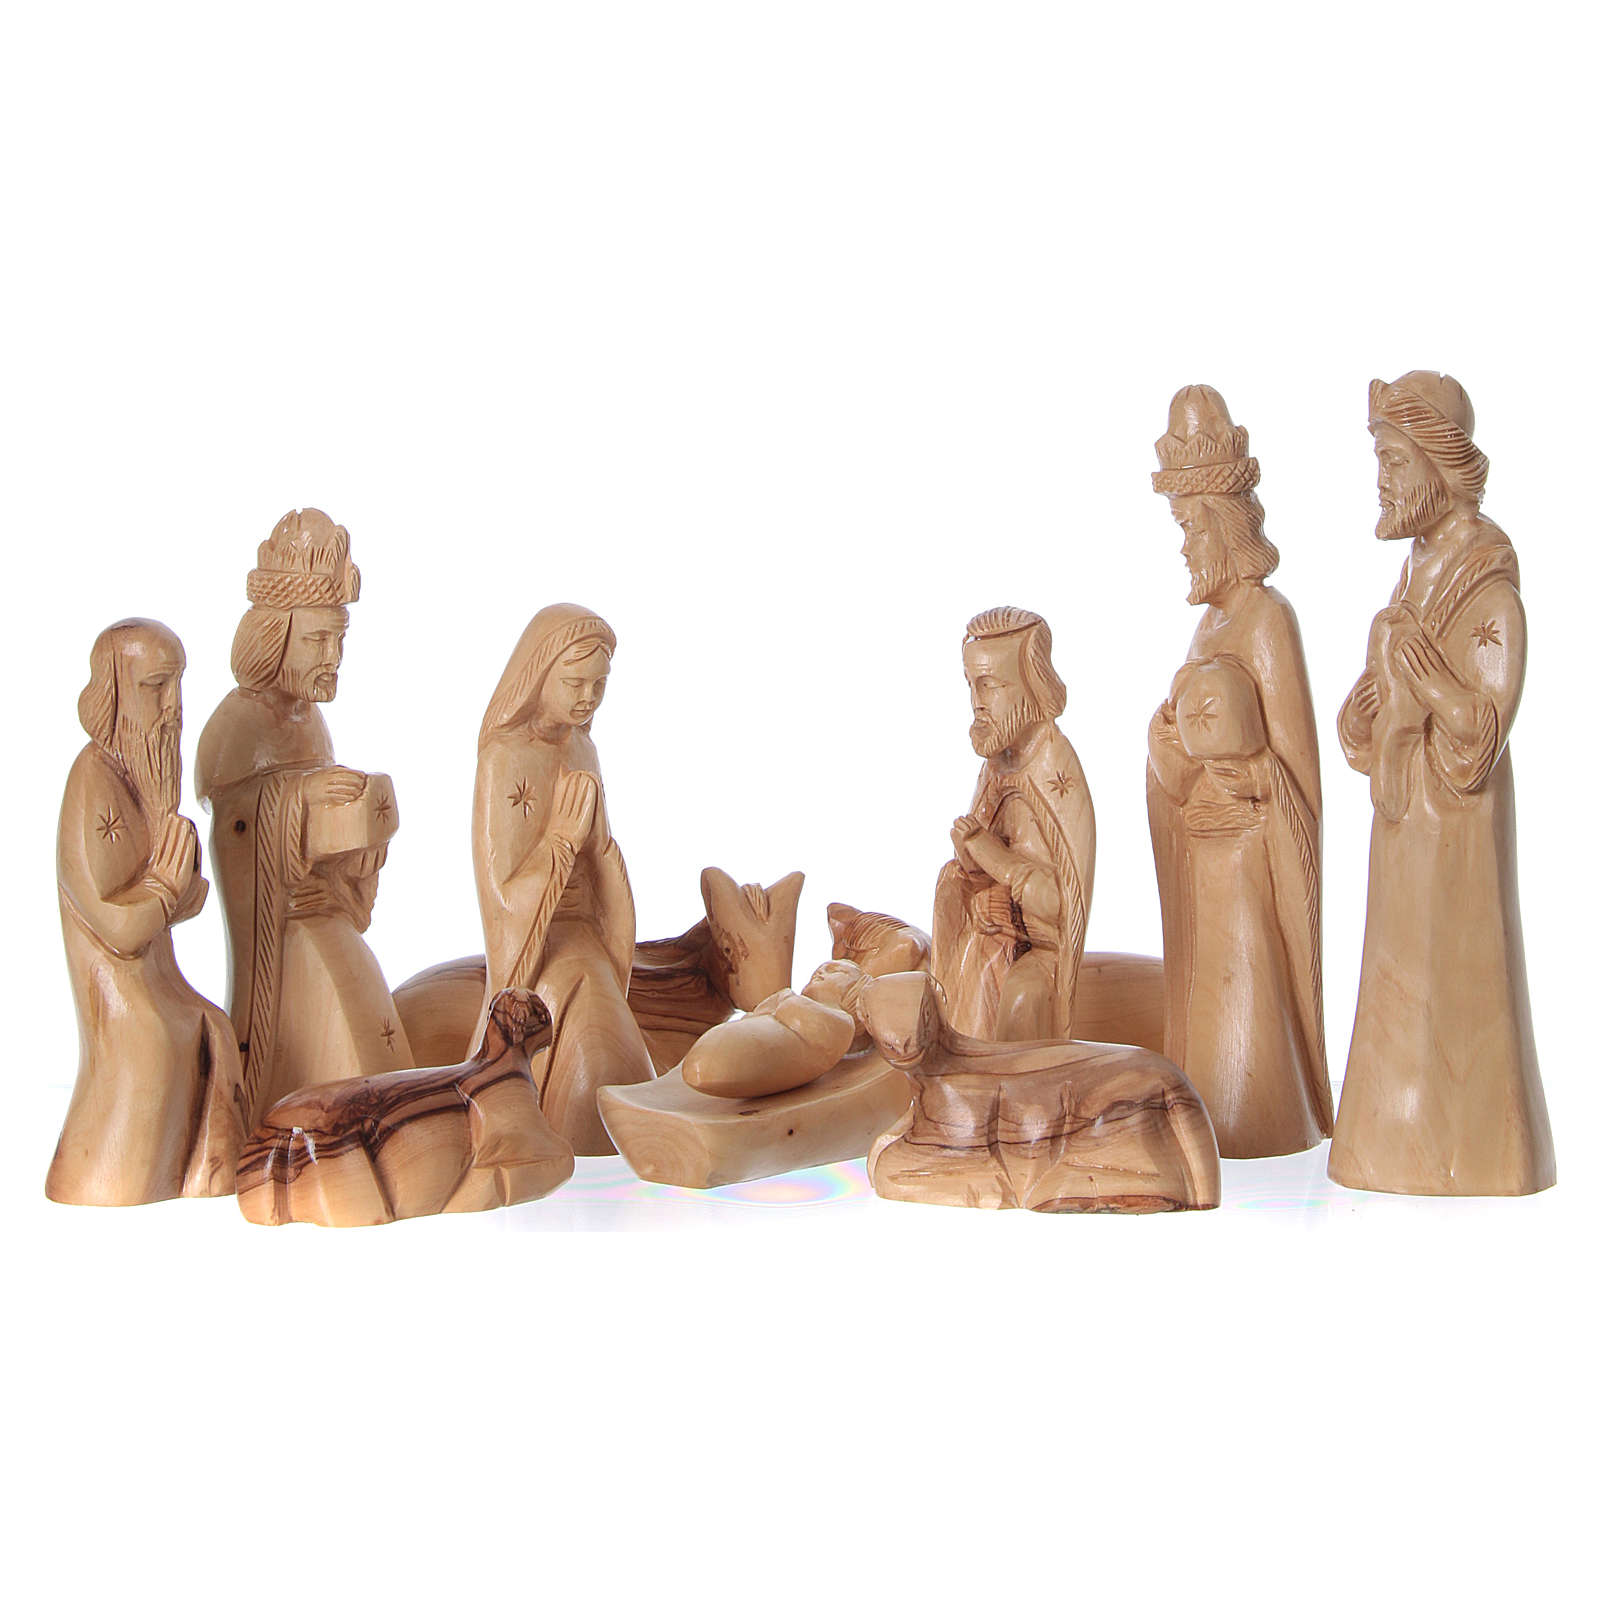 Nativity scene with natural cave in Bethlehem olive wood 45x30x30 cm 4